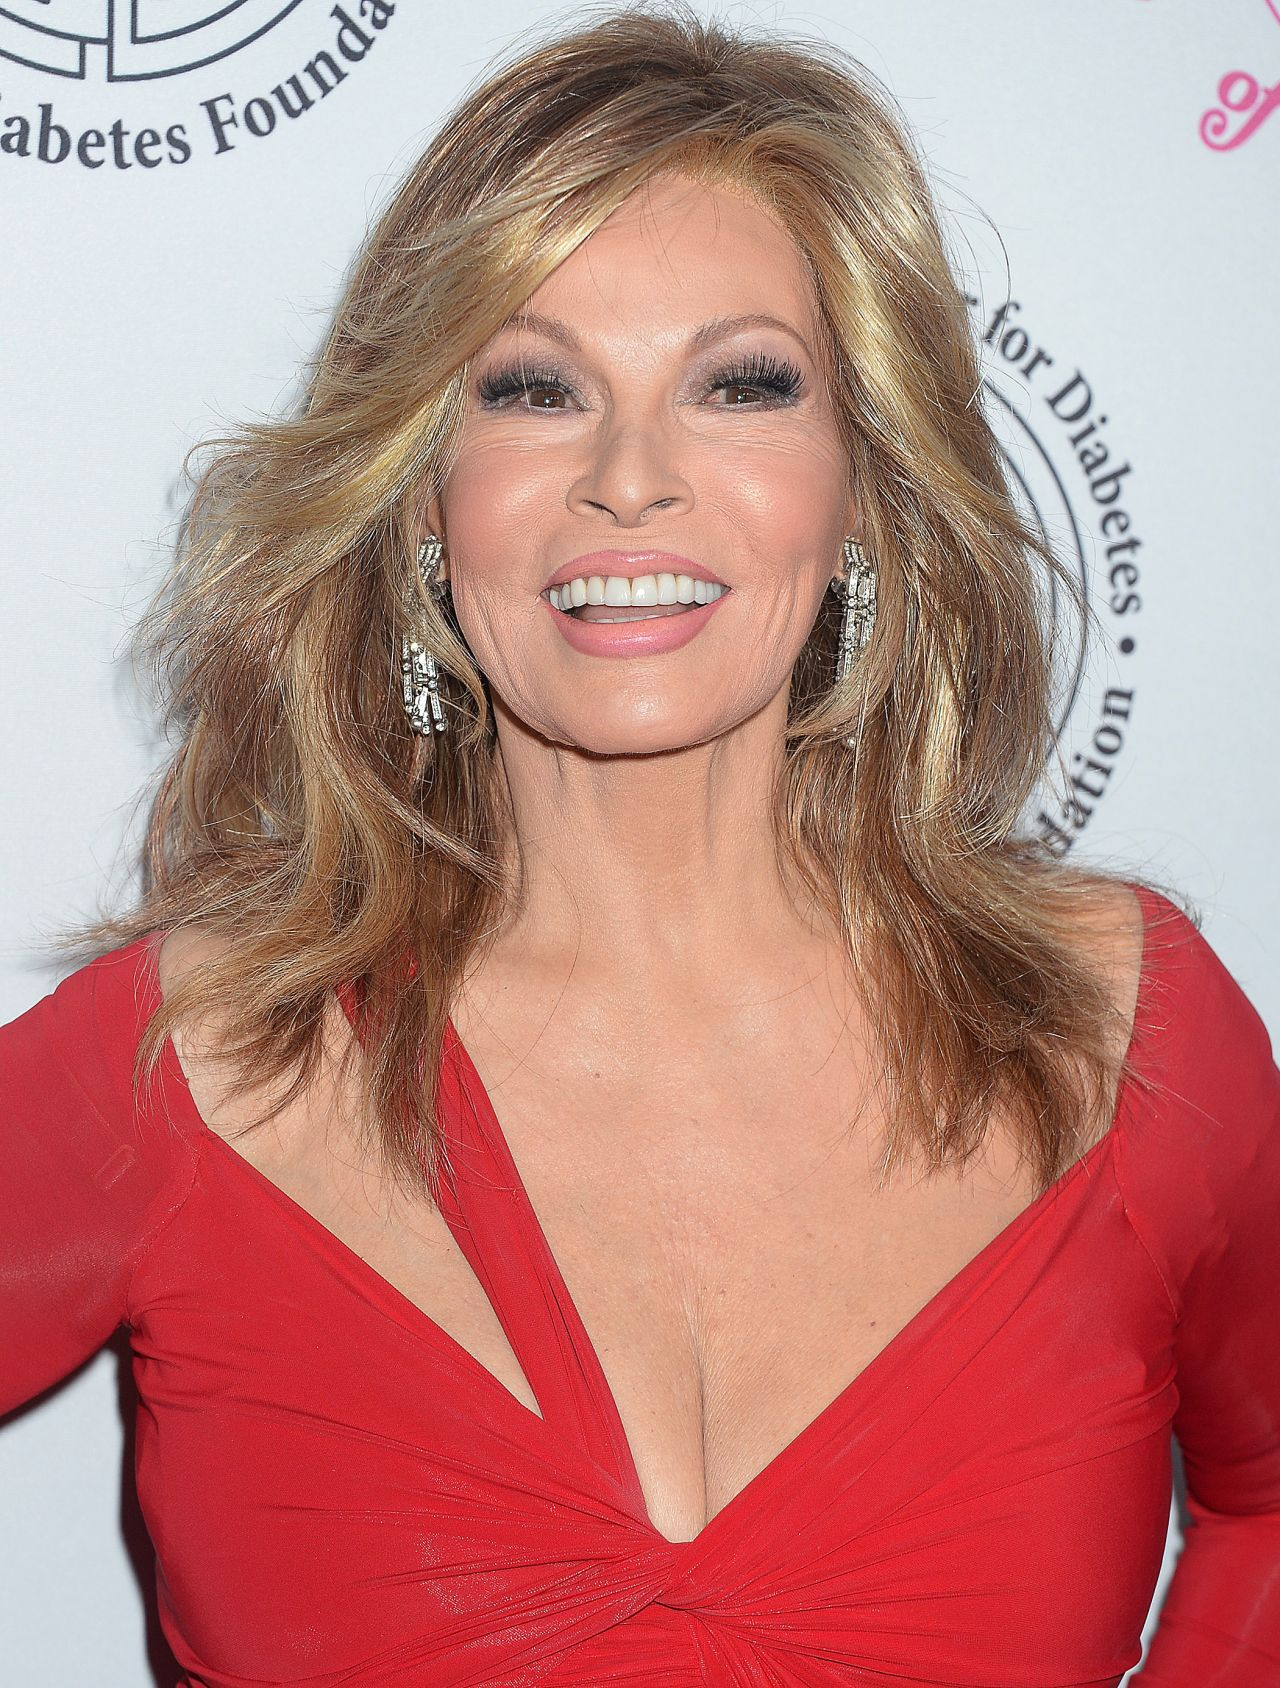 Raquel Welch Carousel Of Hope Ball In Beverly Hills 10